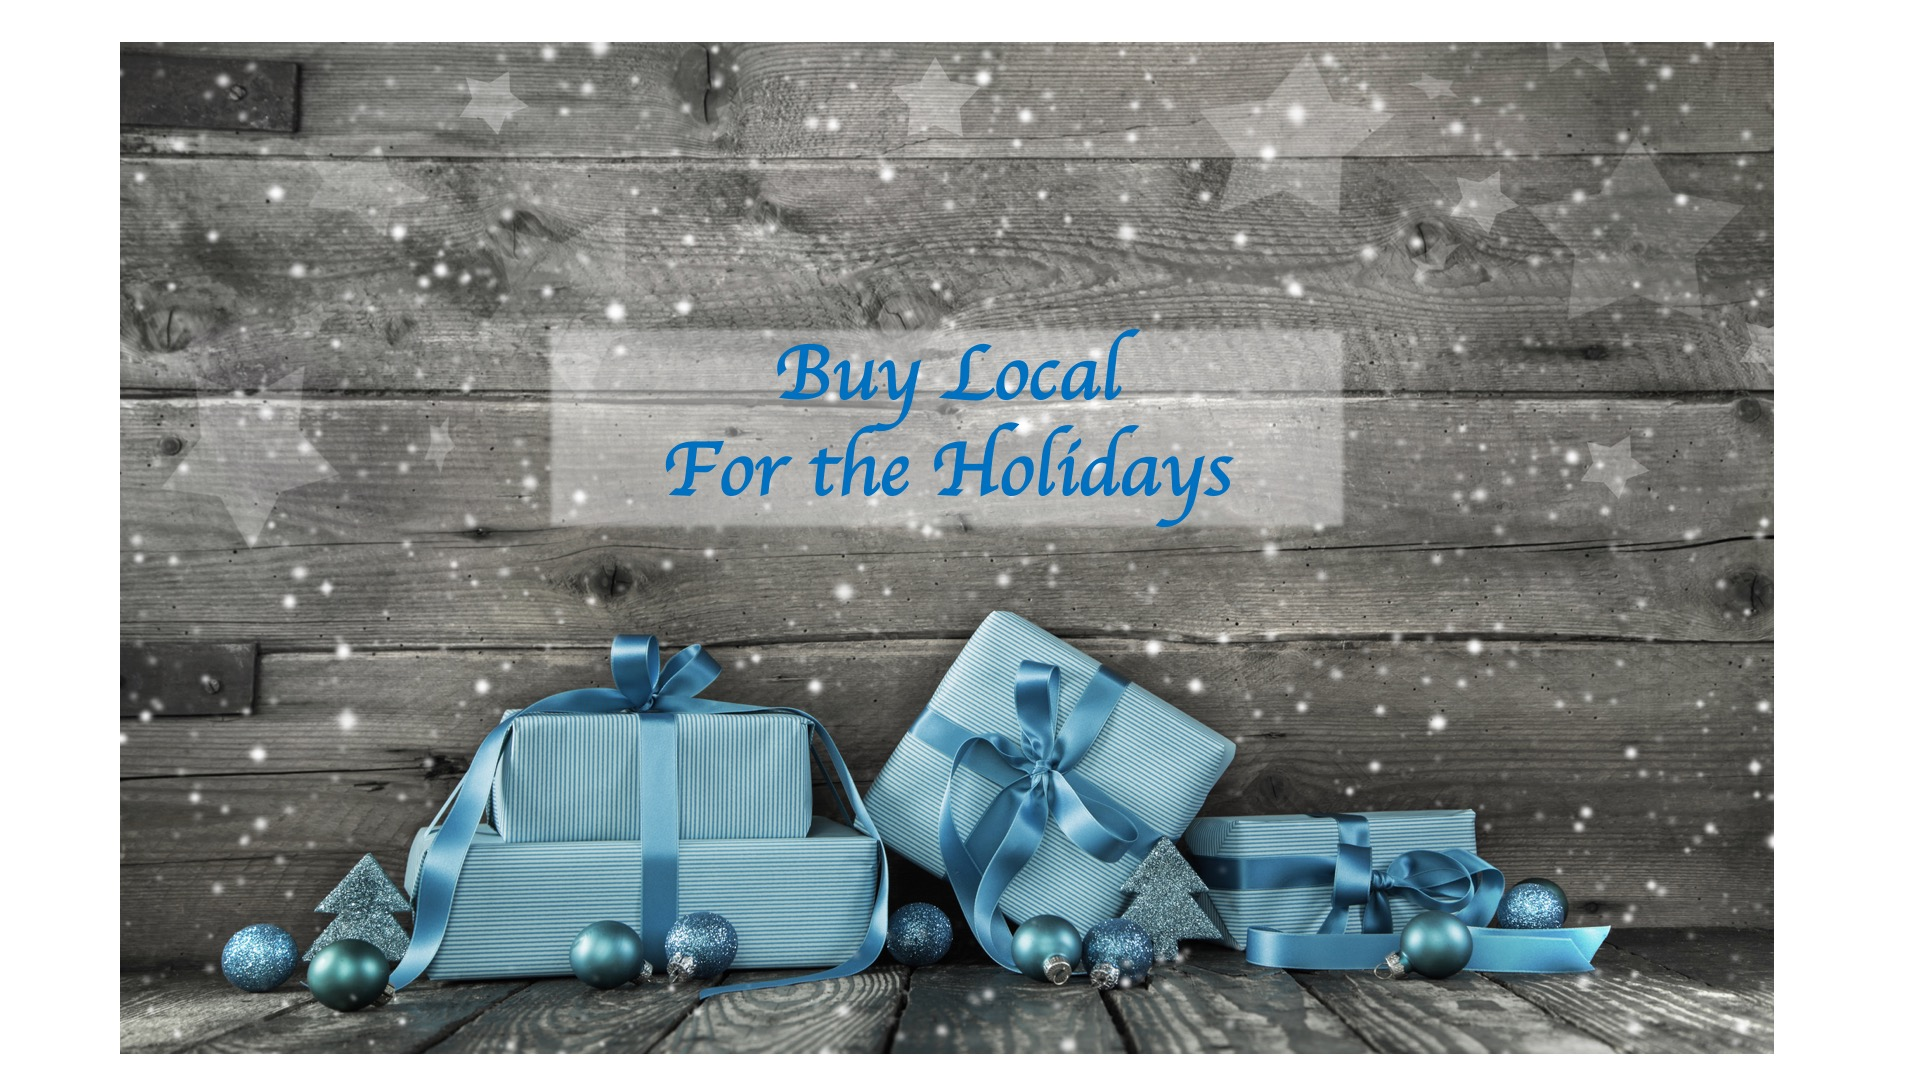 Buy Local for the Holidays over Blue Presents with snow and star filter